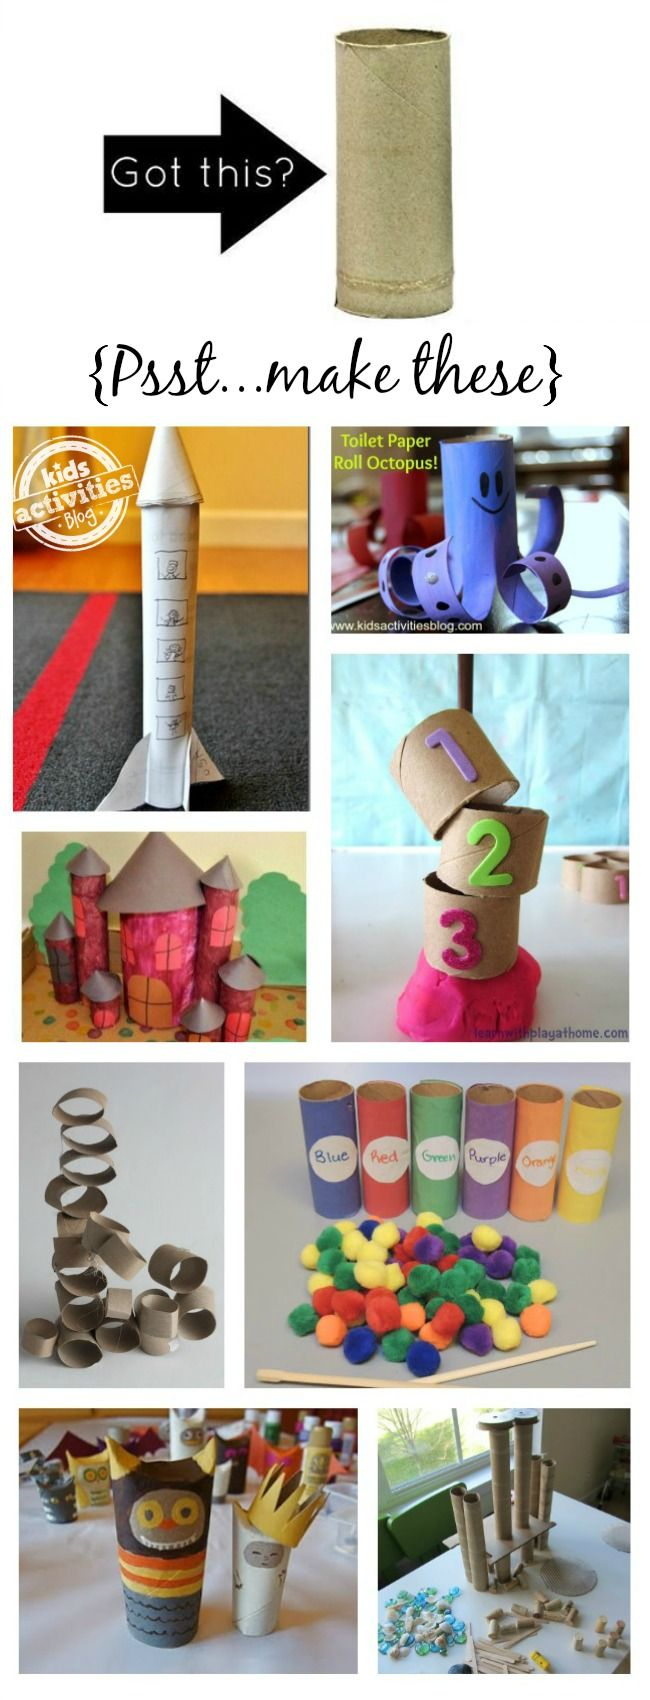 Love this list of toilet paper roll crafts especially #8!!